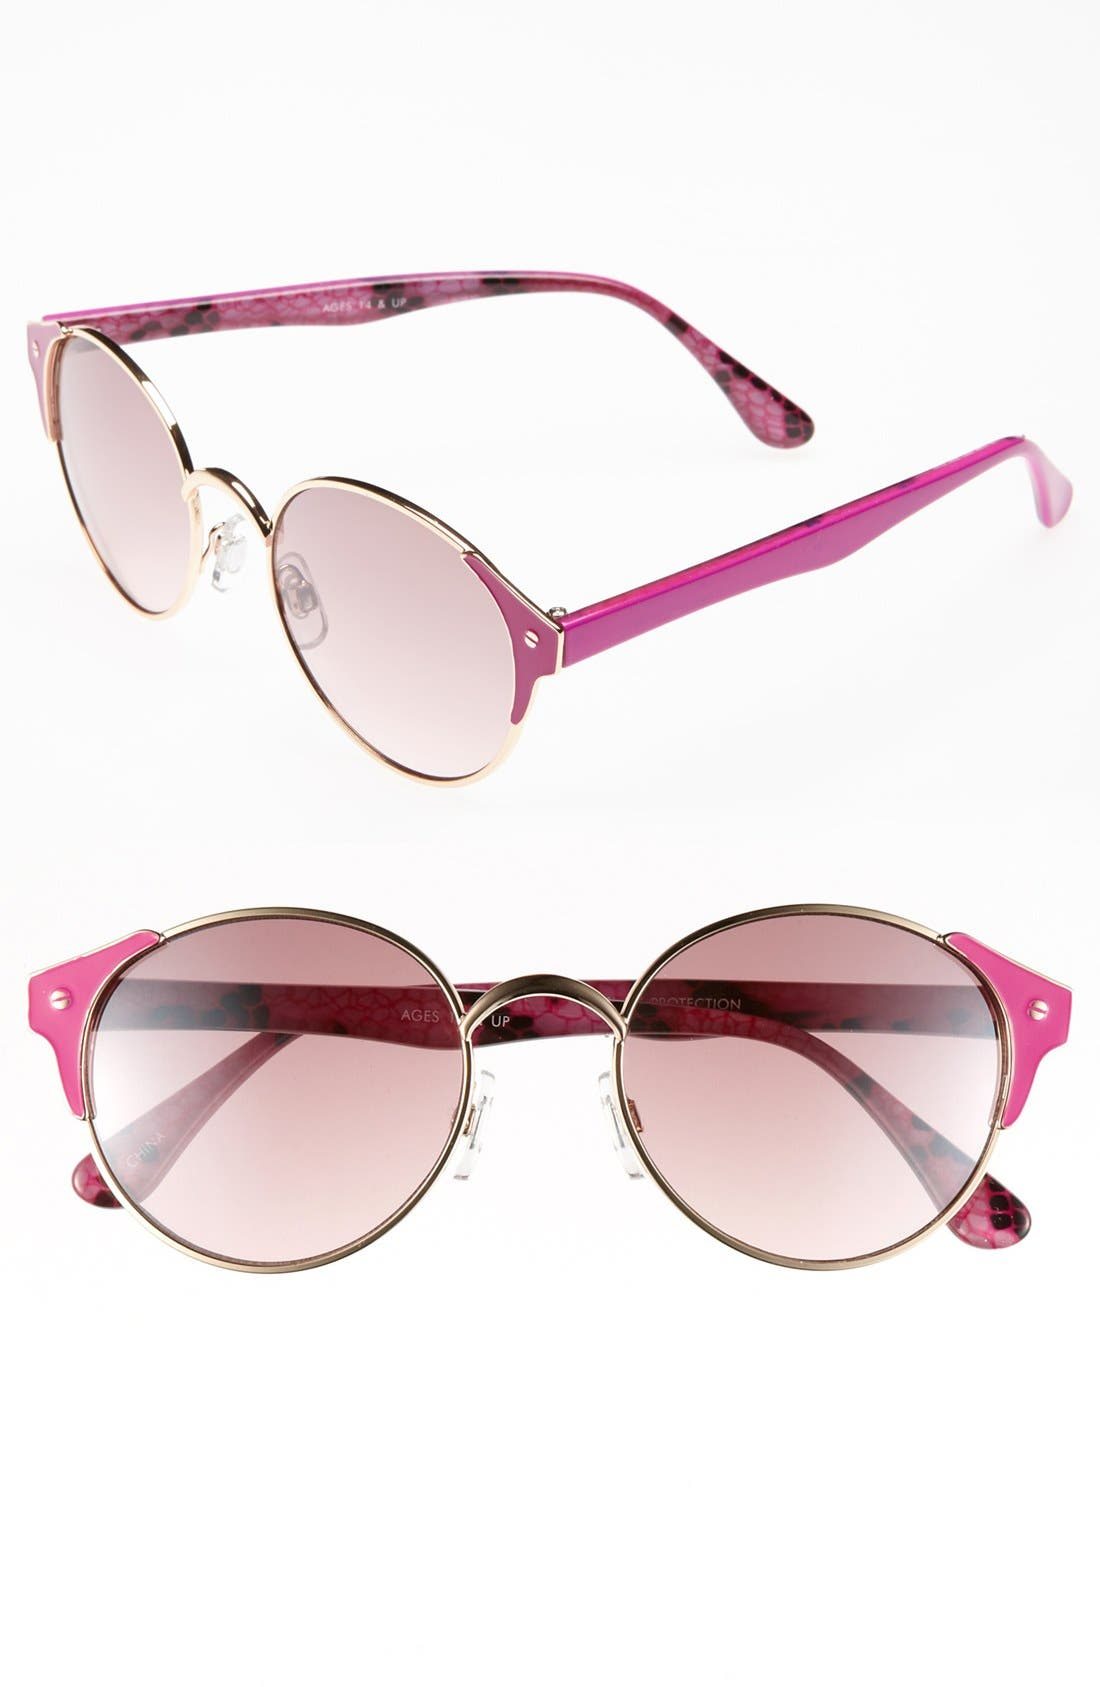 Alternate Image 1 Selected - FE NY 'Color Wire' Metal Sunglasses